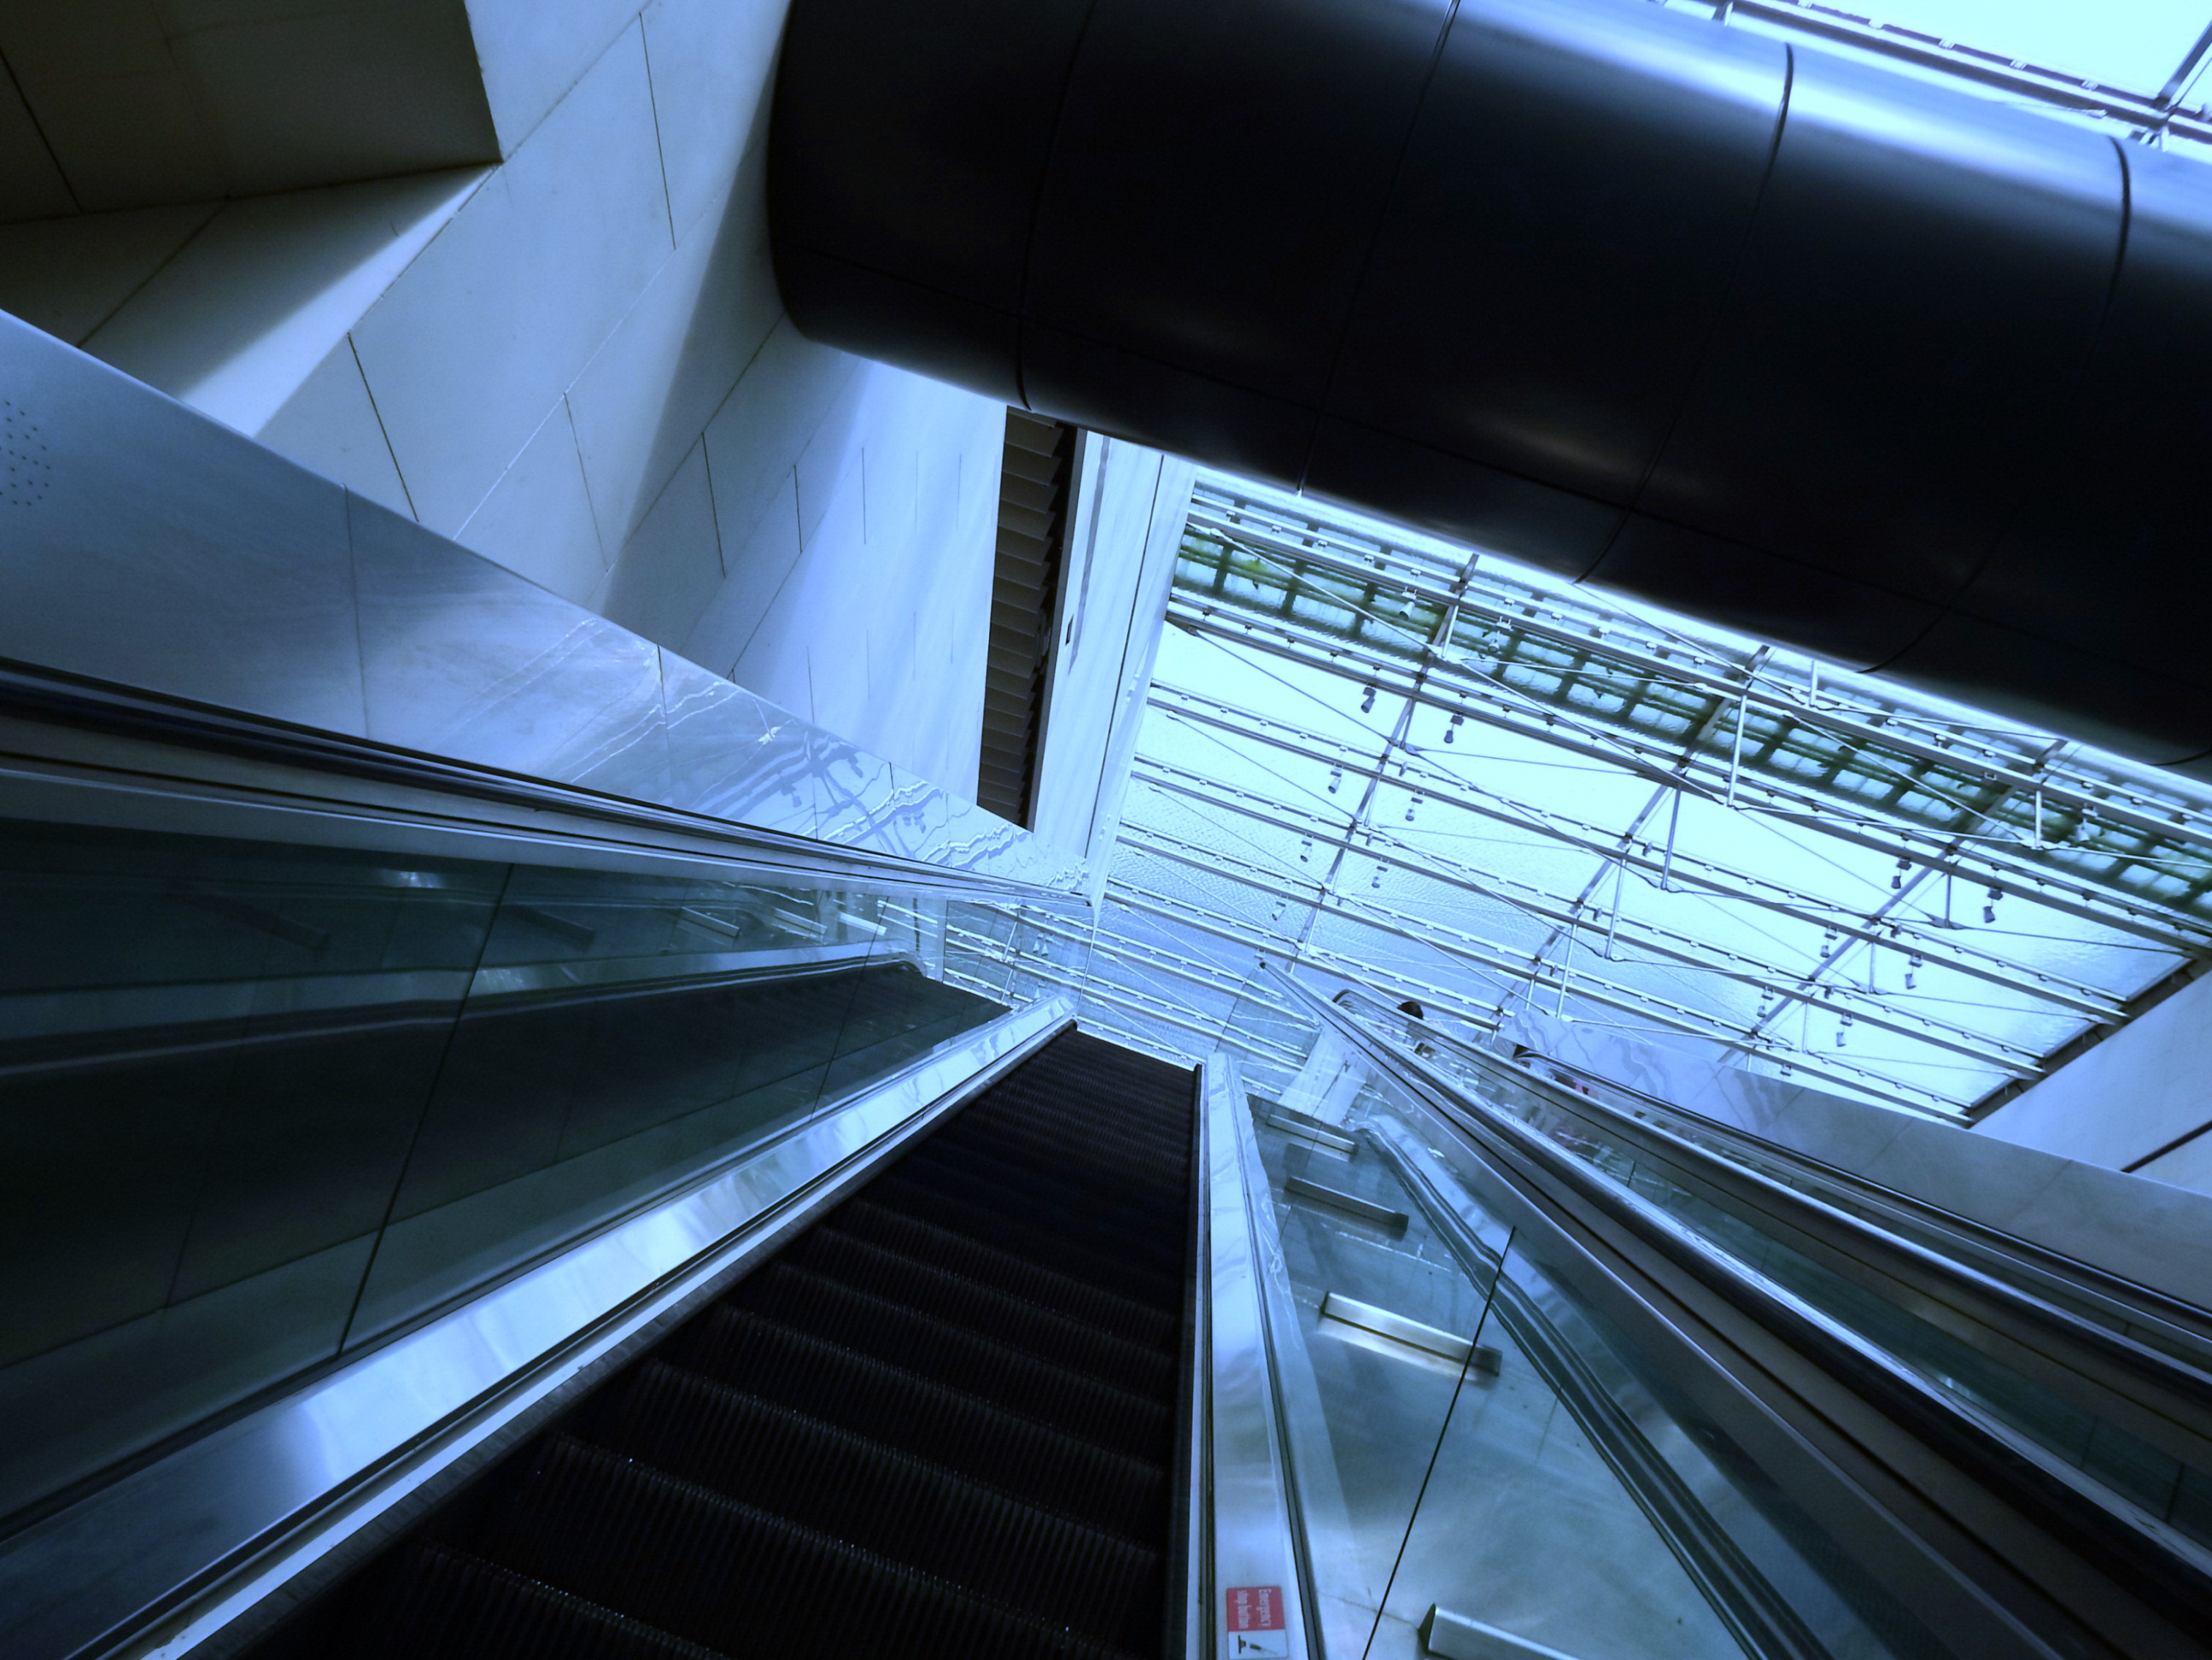 Escalator looking up, Airport, Metal, Urban, Up, HQ Photo